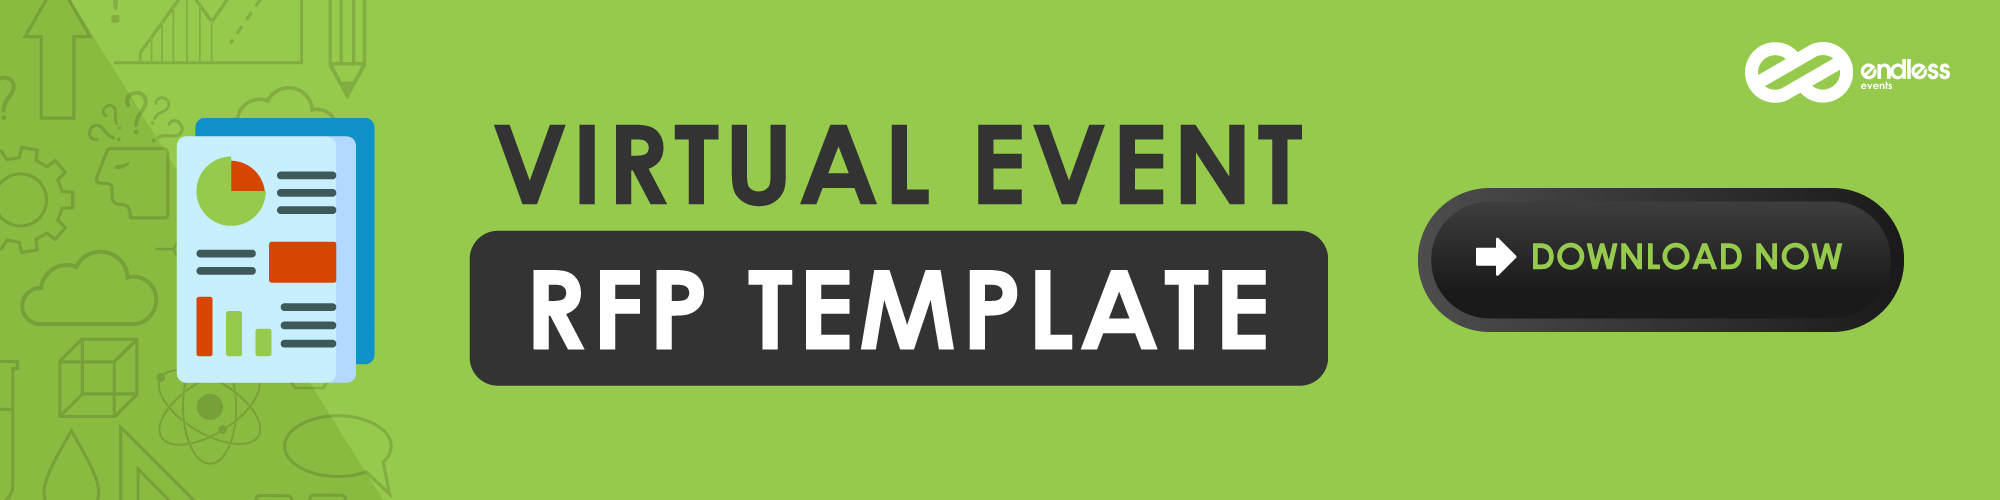 Virtual Event RFP Template